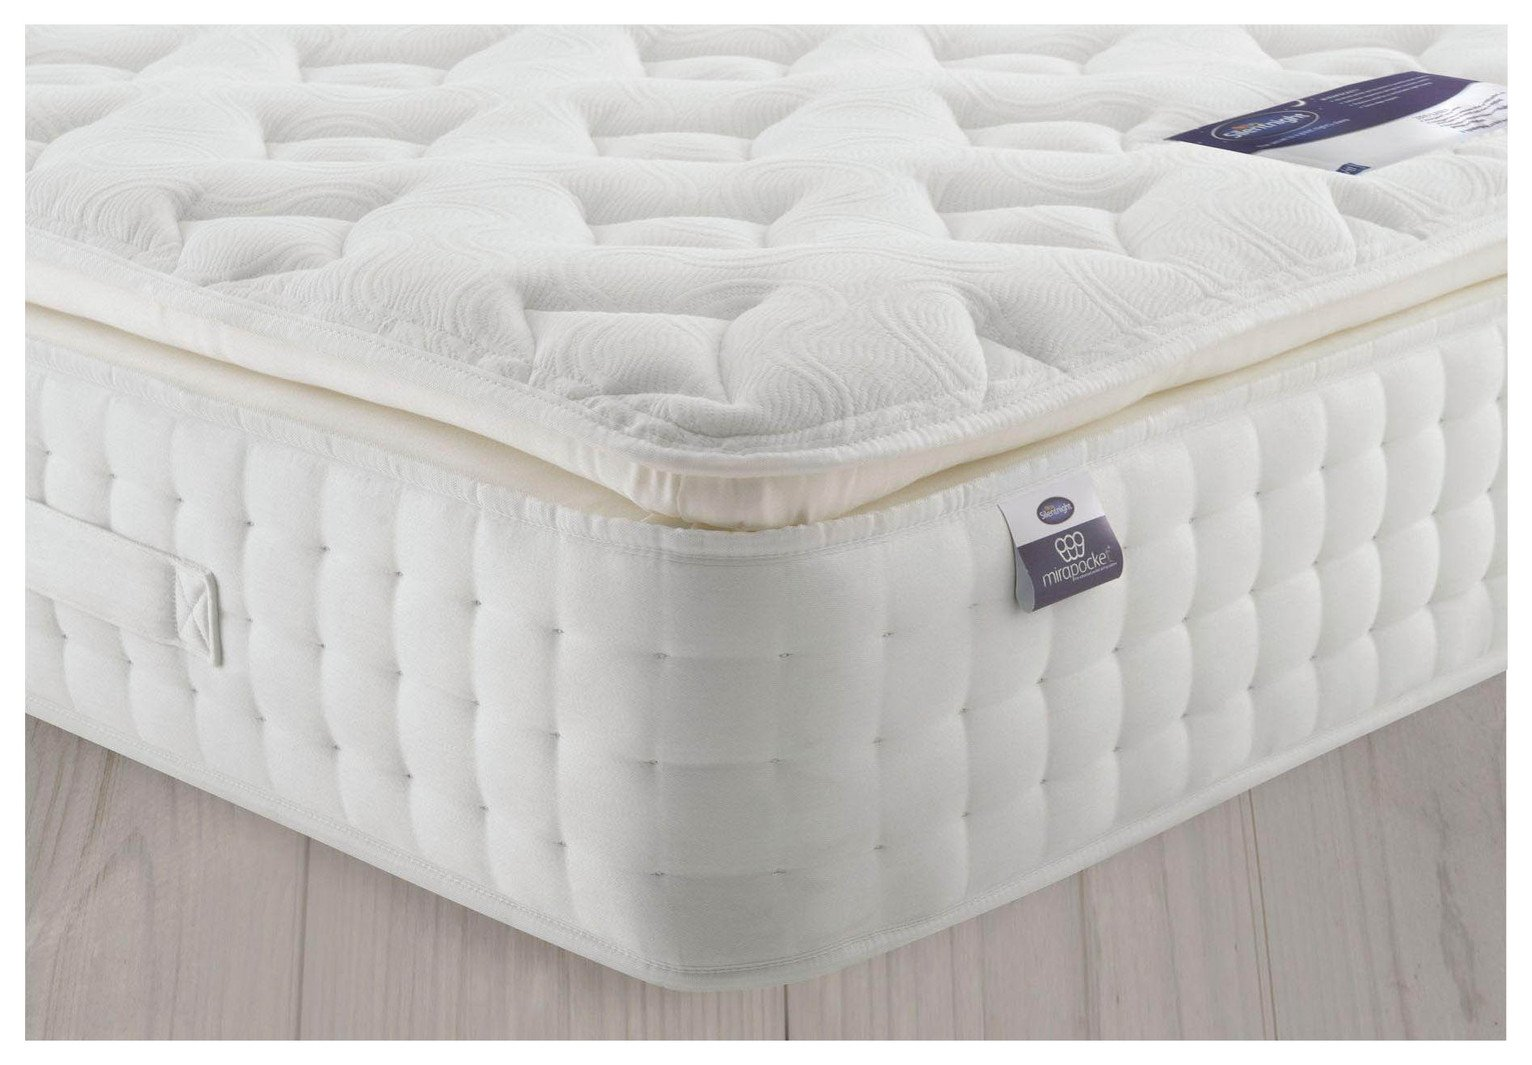 Silentnight Knightly 2800 Latex Pillowtop Double Mattress